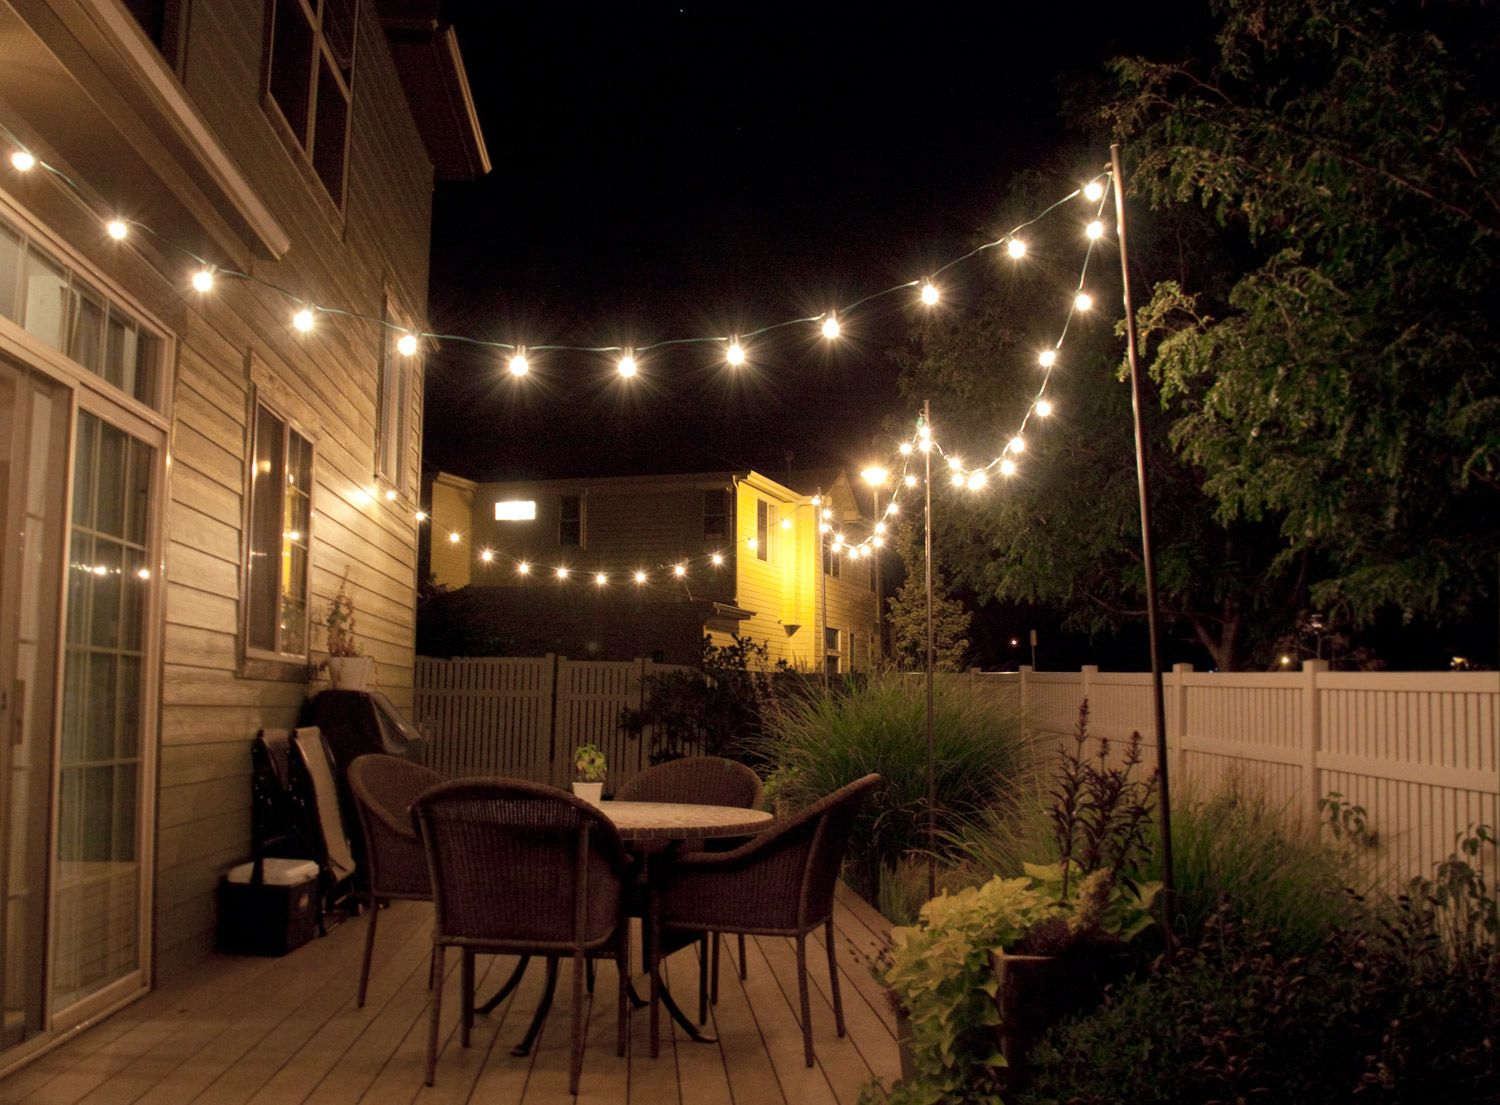 How To Hang String Lights On Covered Patio Amazing How To Make Inexpensive Poles To Hang String Lights On  Café Style Design Ideas